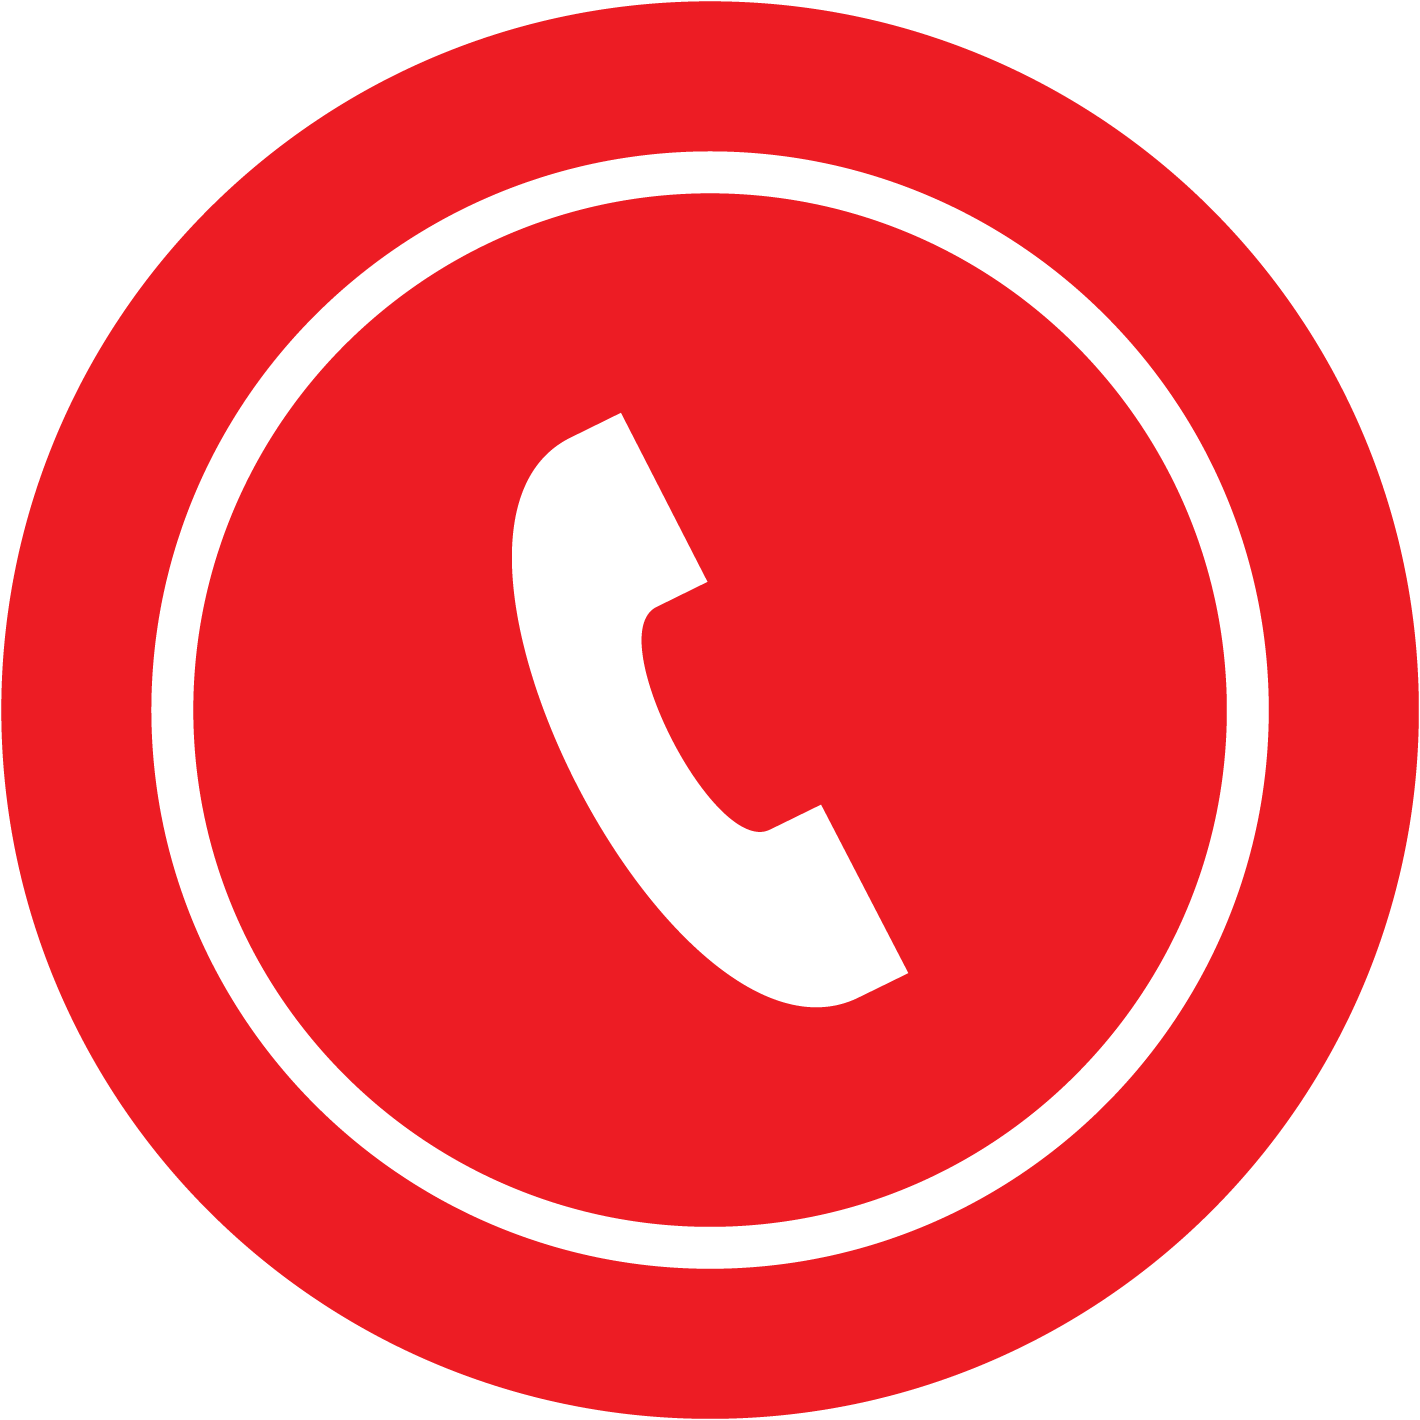 Red Phone Icon Png, png collections at sccpre.cat.